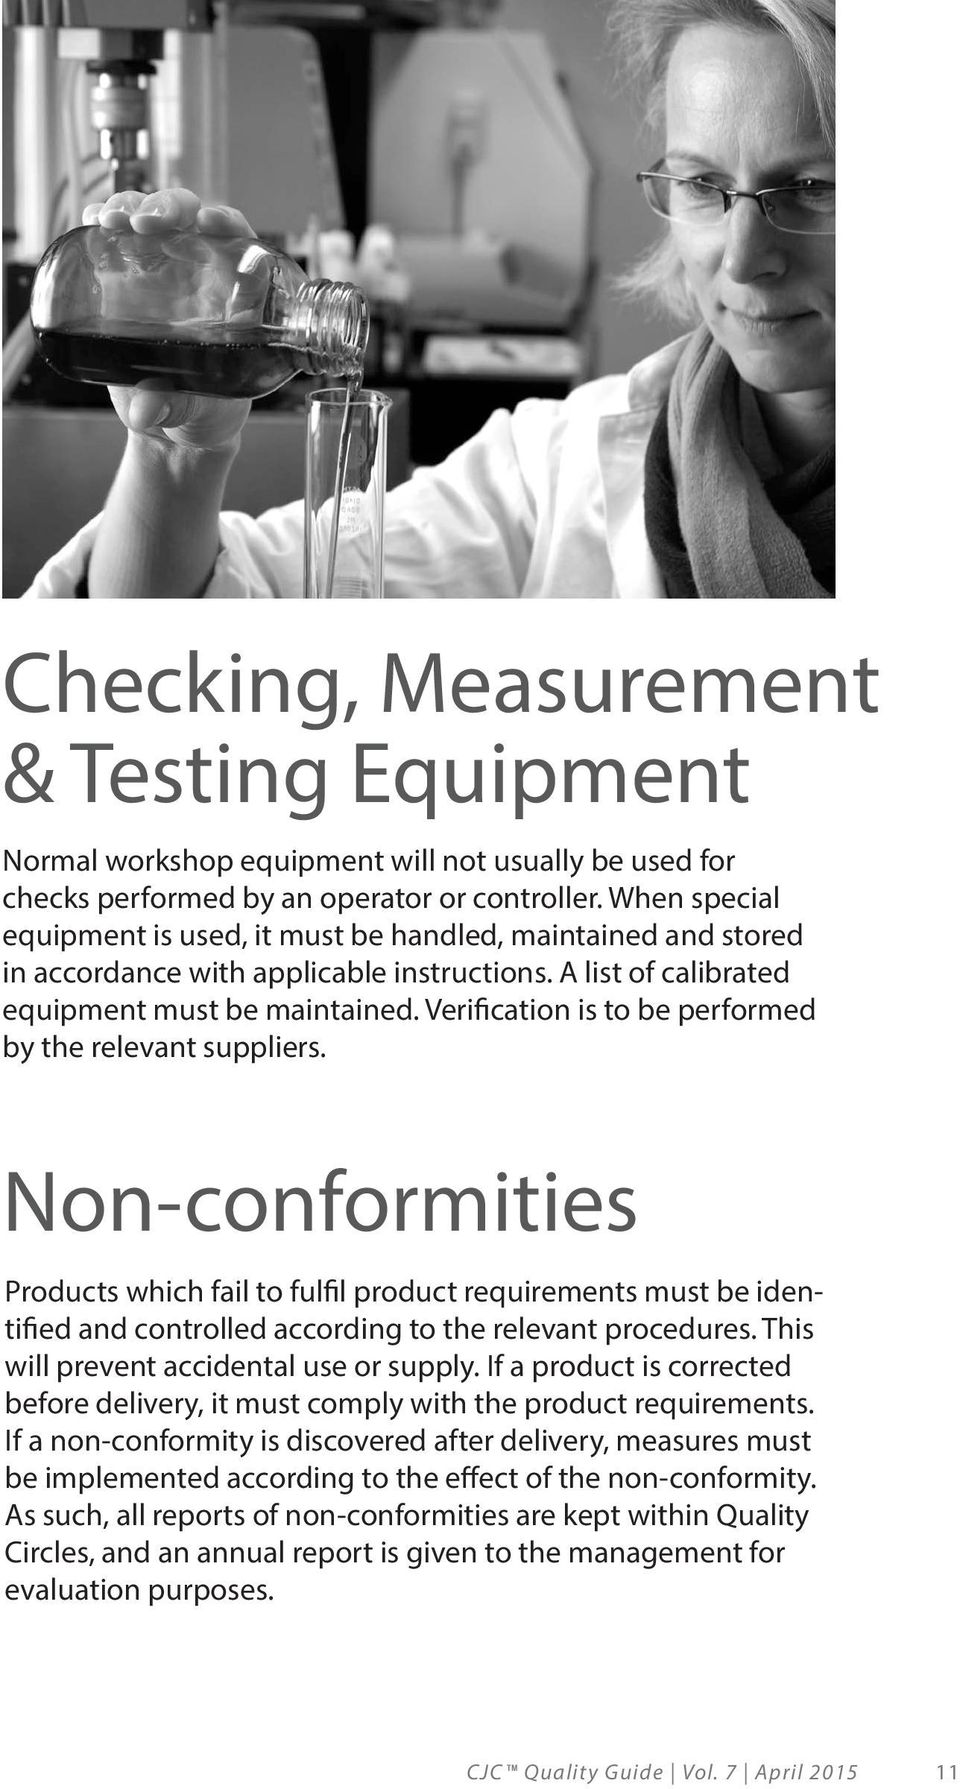 Verification is to be performed by the relevant suppliers. Non-conformities Products which fail to fulfil product requirements must be identified and controlled according to the relevant procedures.